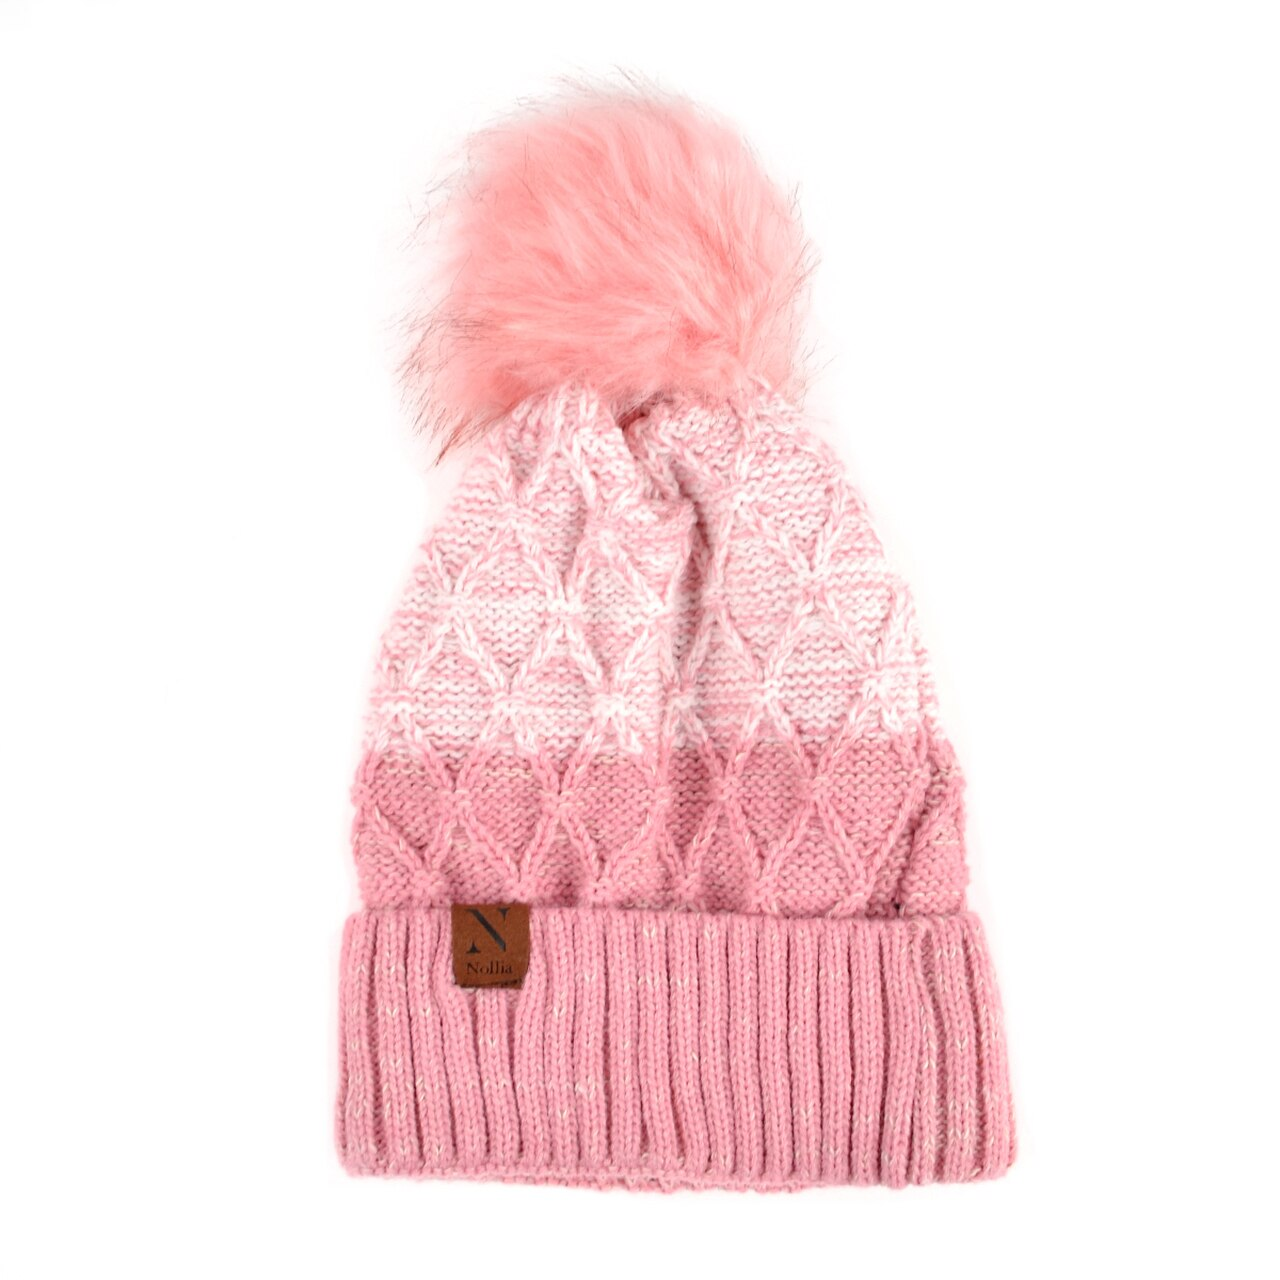 Split-Toned Pom Pom Stocking hat